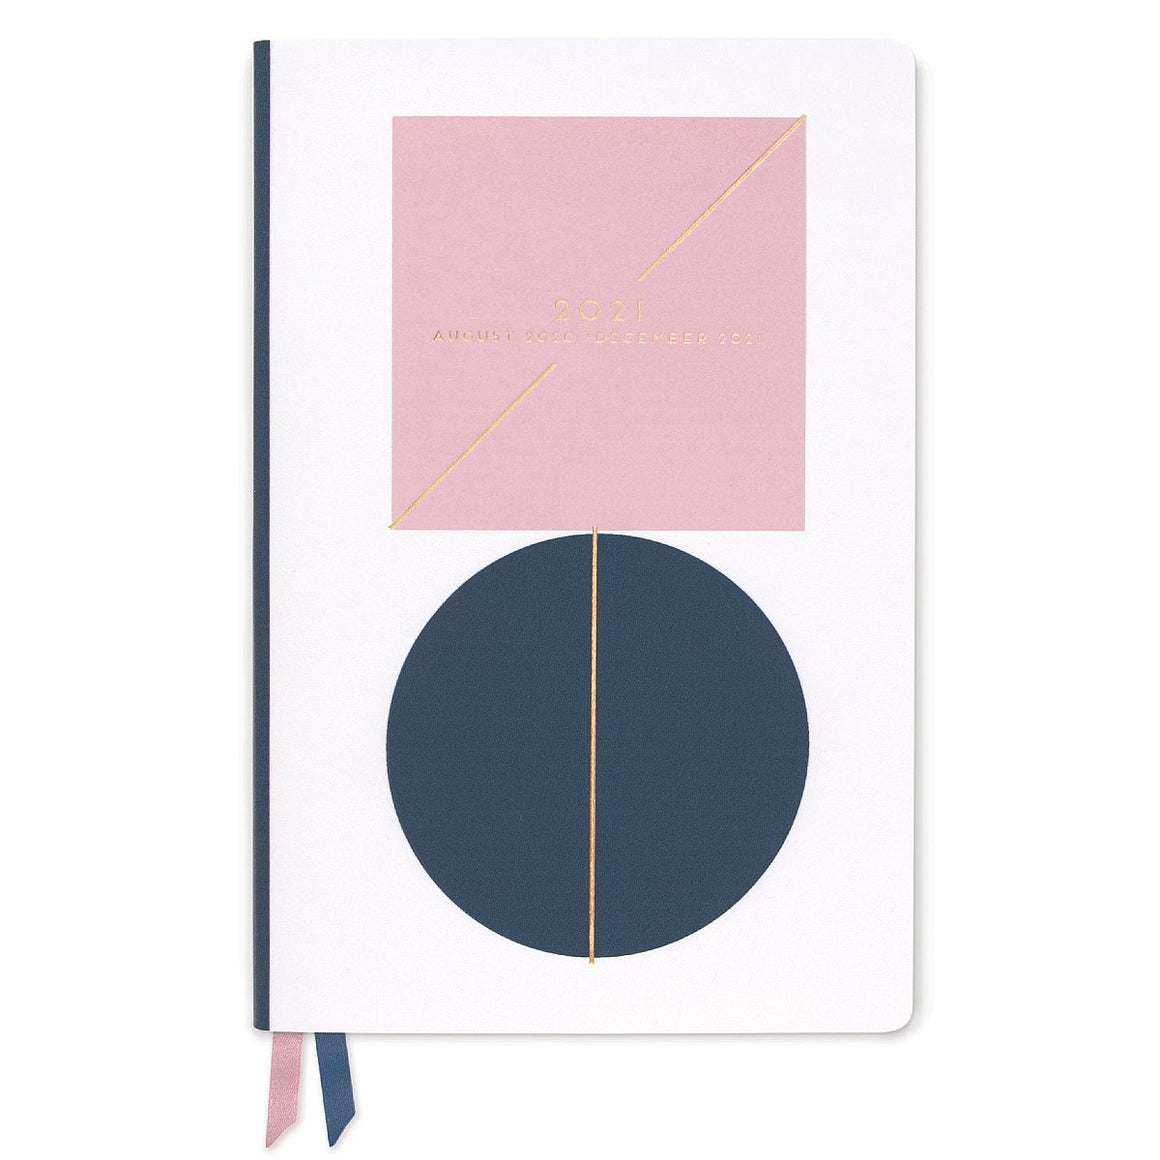 The cover of a 2020 - 2021 diary featuring a pink square and a blue circle on a white background. Gold embosses text and embellishments feature.